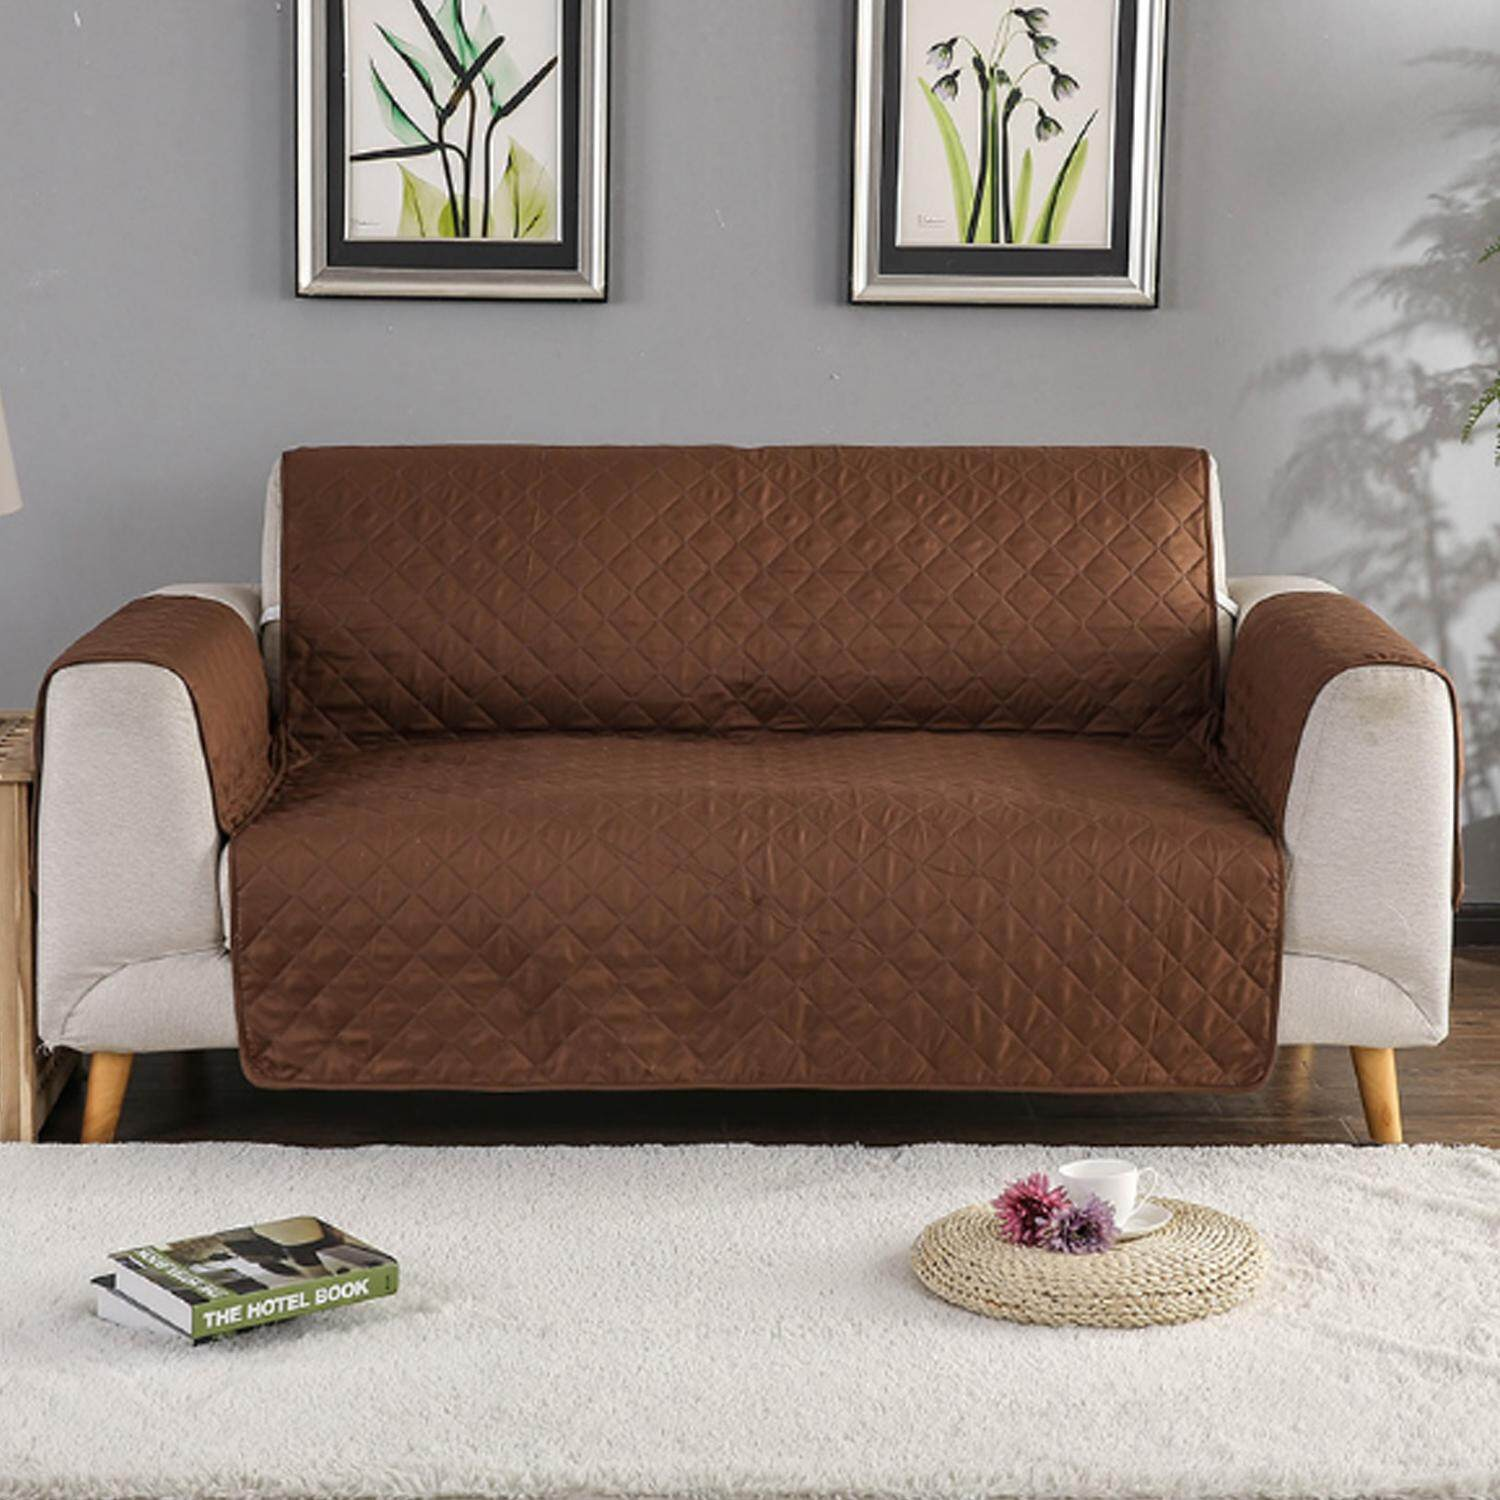 Reversible Wear Resistant Sofa Loveseat Furniture Protector Cover Mat Pet Couch Coat Slipcovers 70 87 X